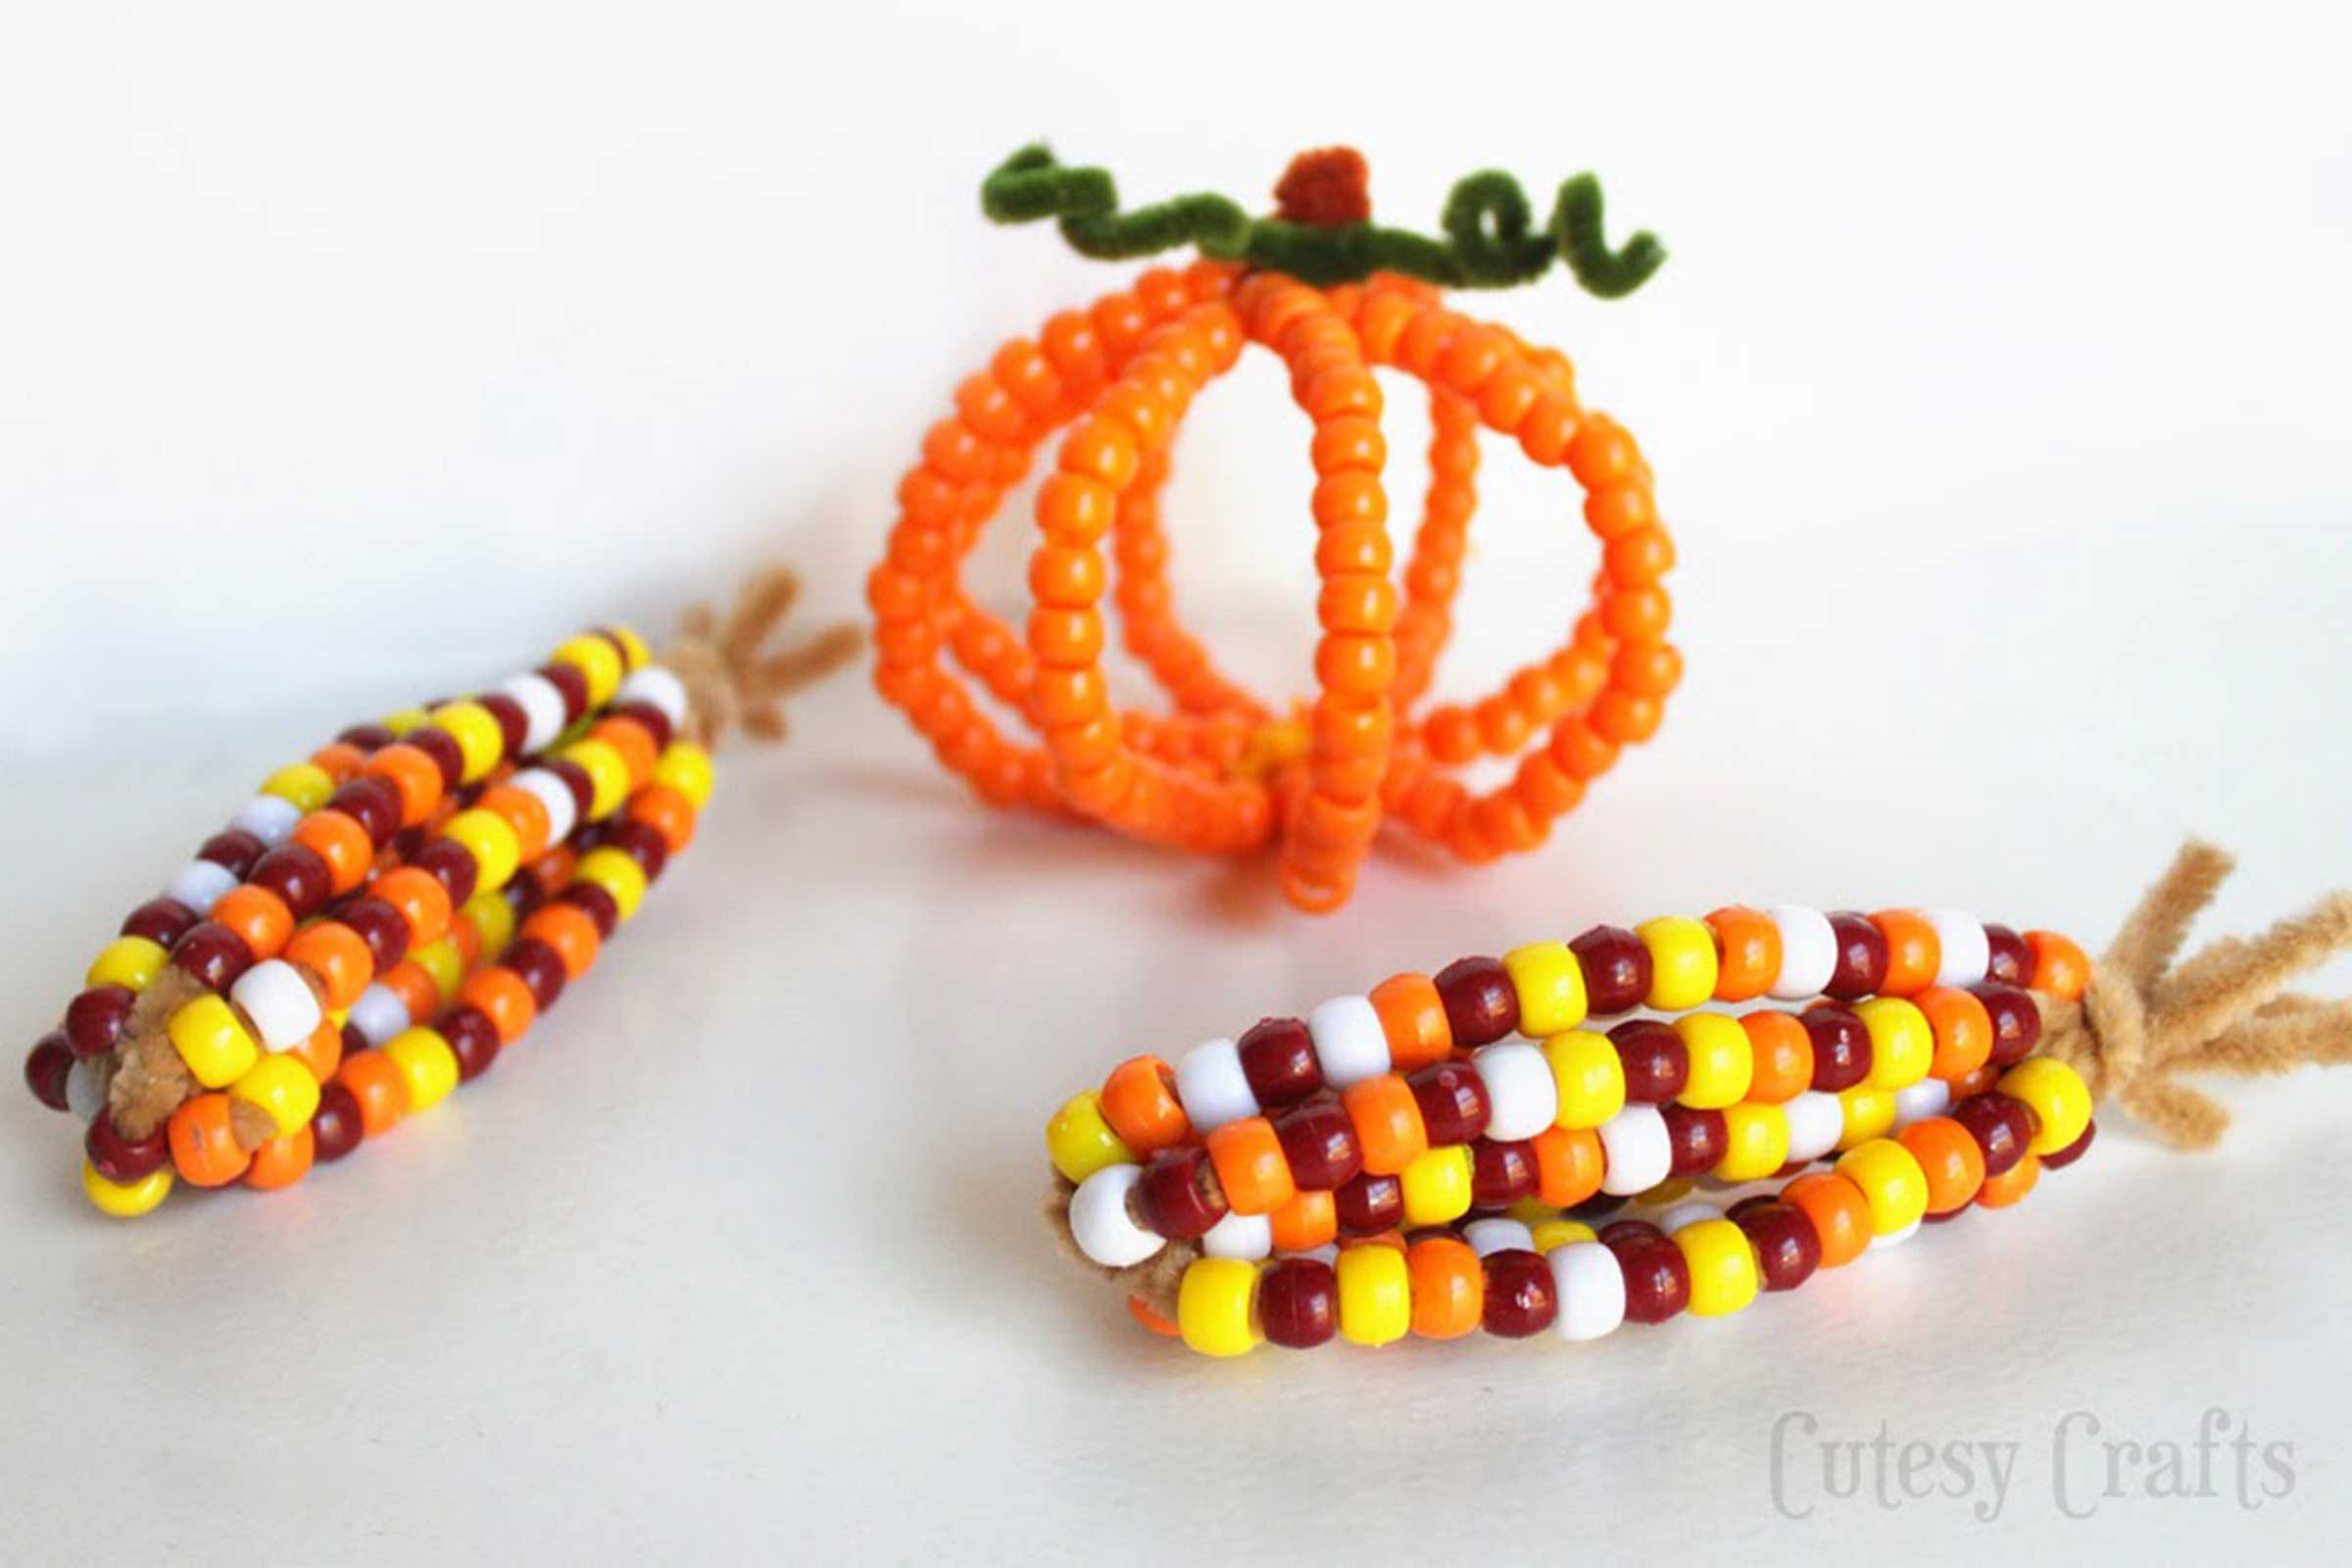 Thanksgiving Craft Part - 22: Courtesy Cutesy Crafts